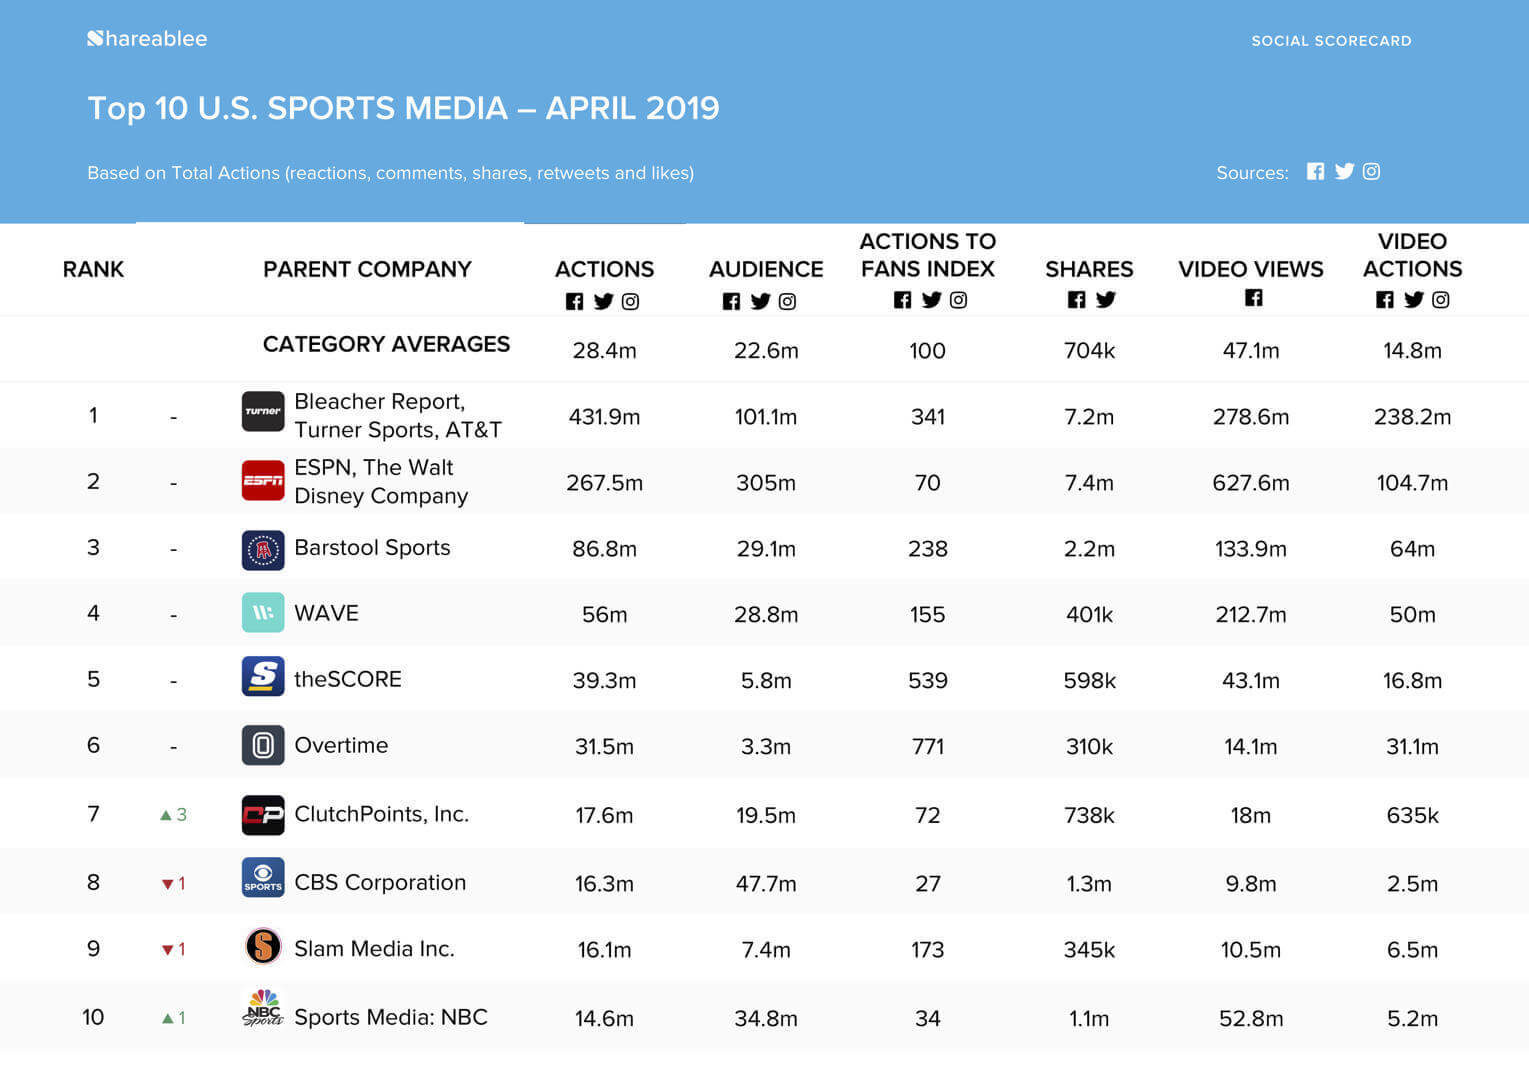 Pushdy - Top 10 U.S Sports Media - April 2019